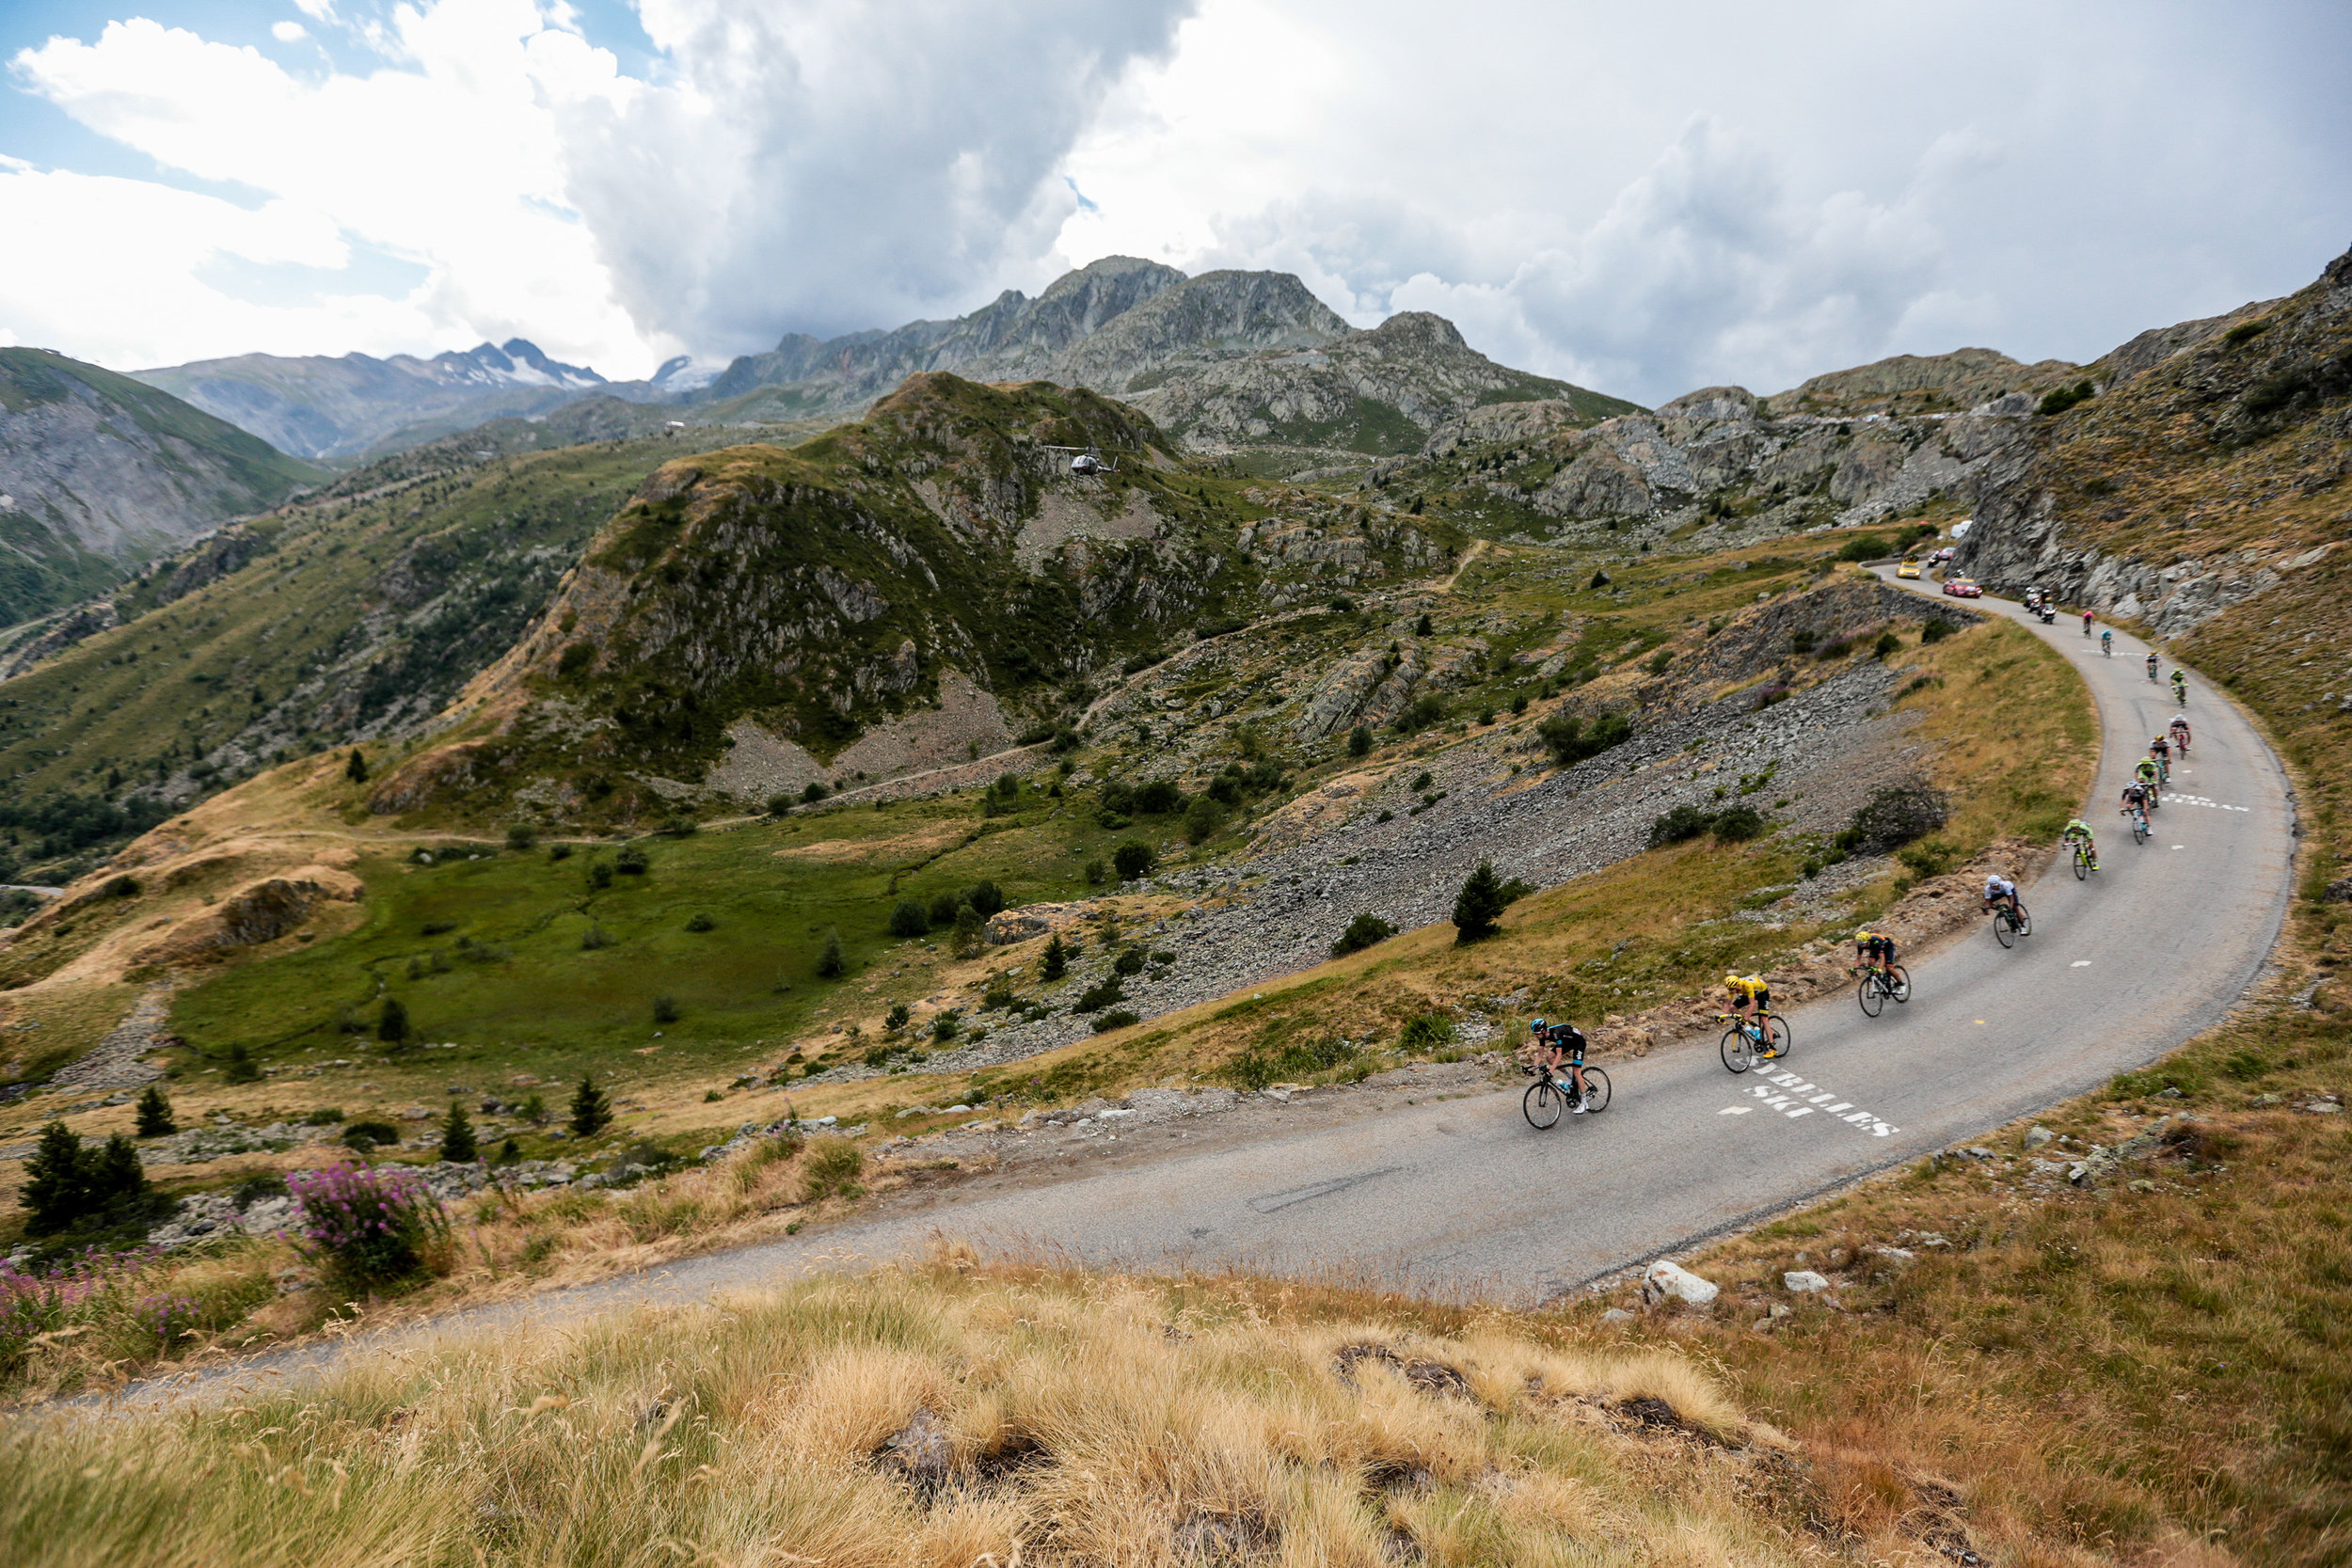 A mountain stage from the 2013 Tour de France